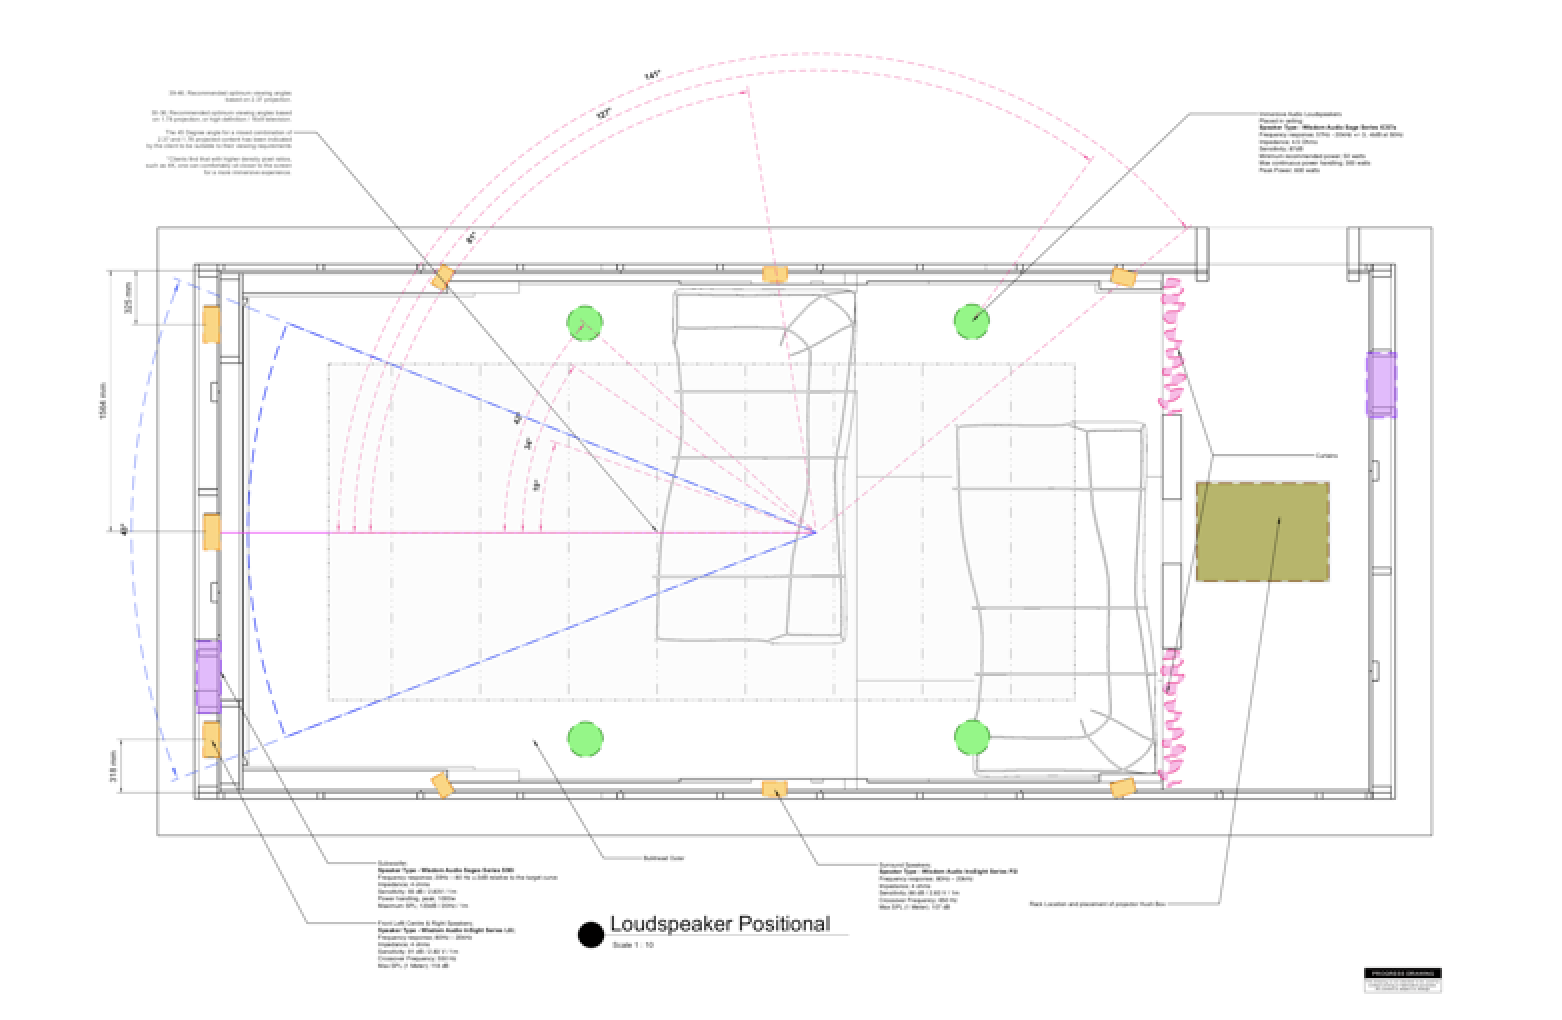 Technical speaker layout of our Camps Bay home cinema - plan view